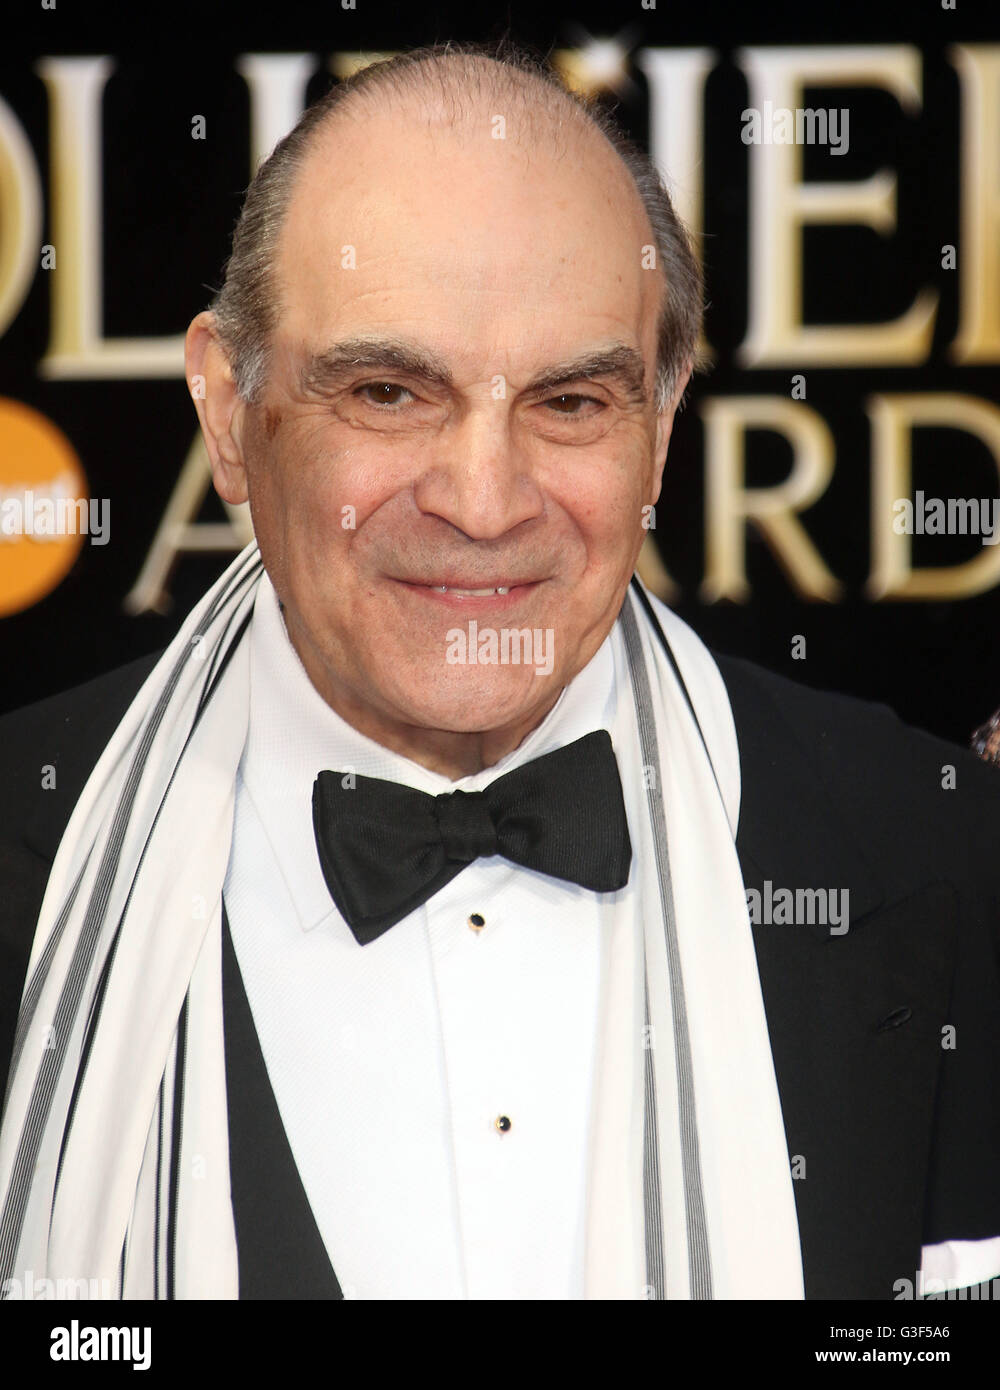 April 3, 2016 - David Suchet attending The Olivier Awards 2016 at Royal Opera House, Covent Garden in London, UK. - Stock Image